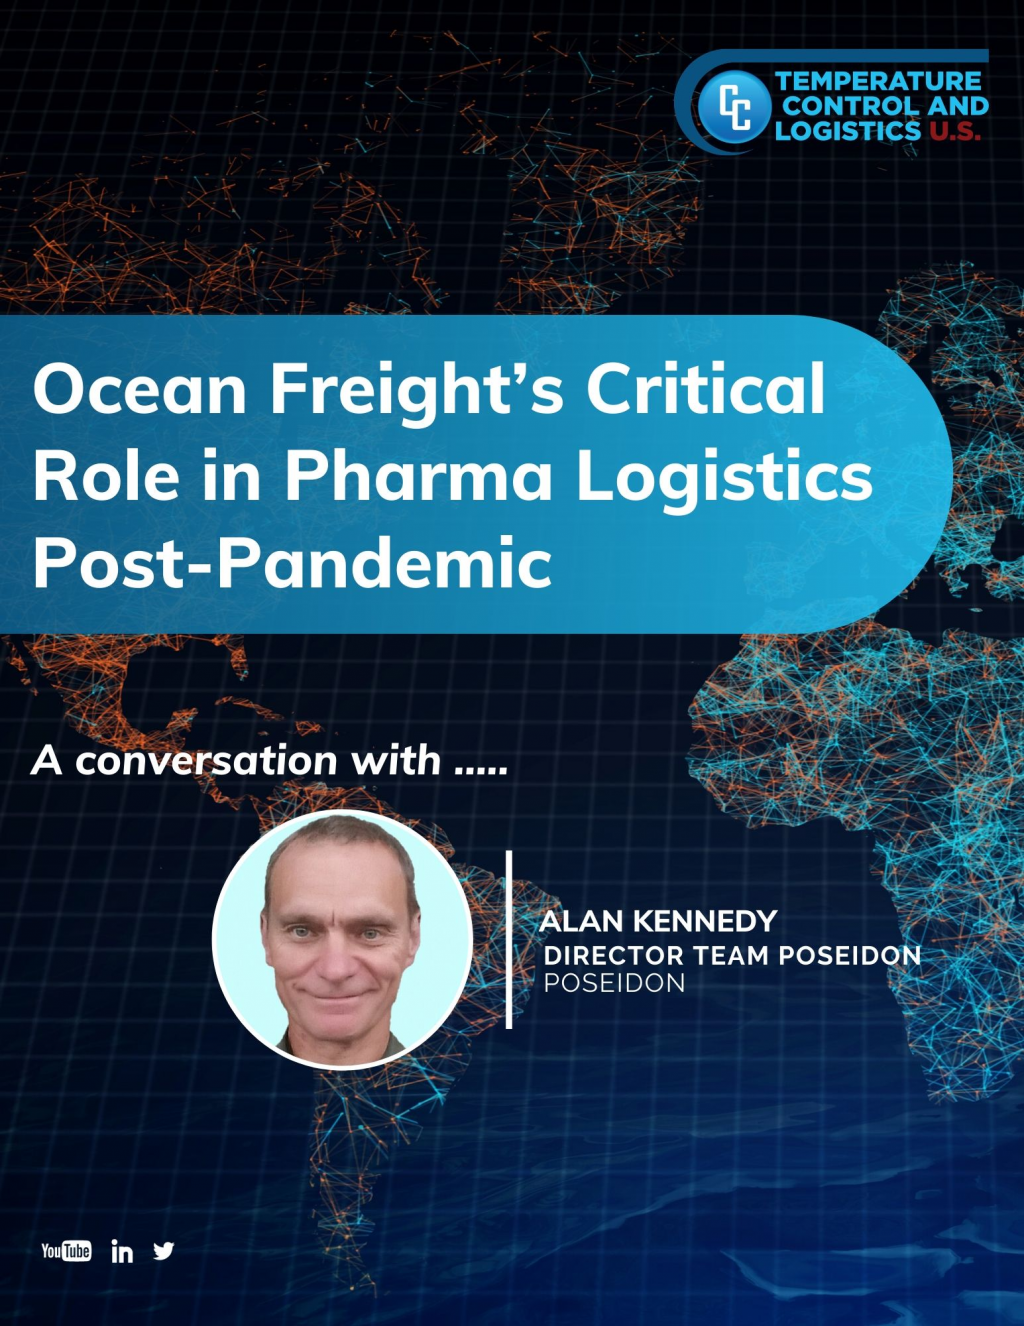 Ocean Freight's Critical Role Post-Pandemic